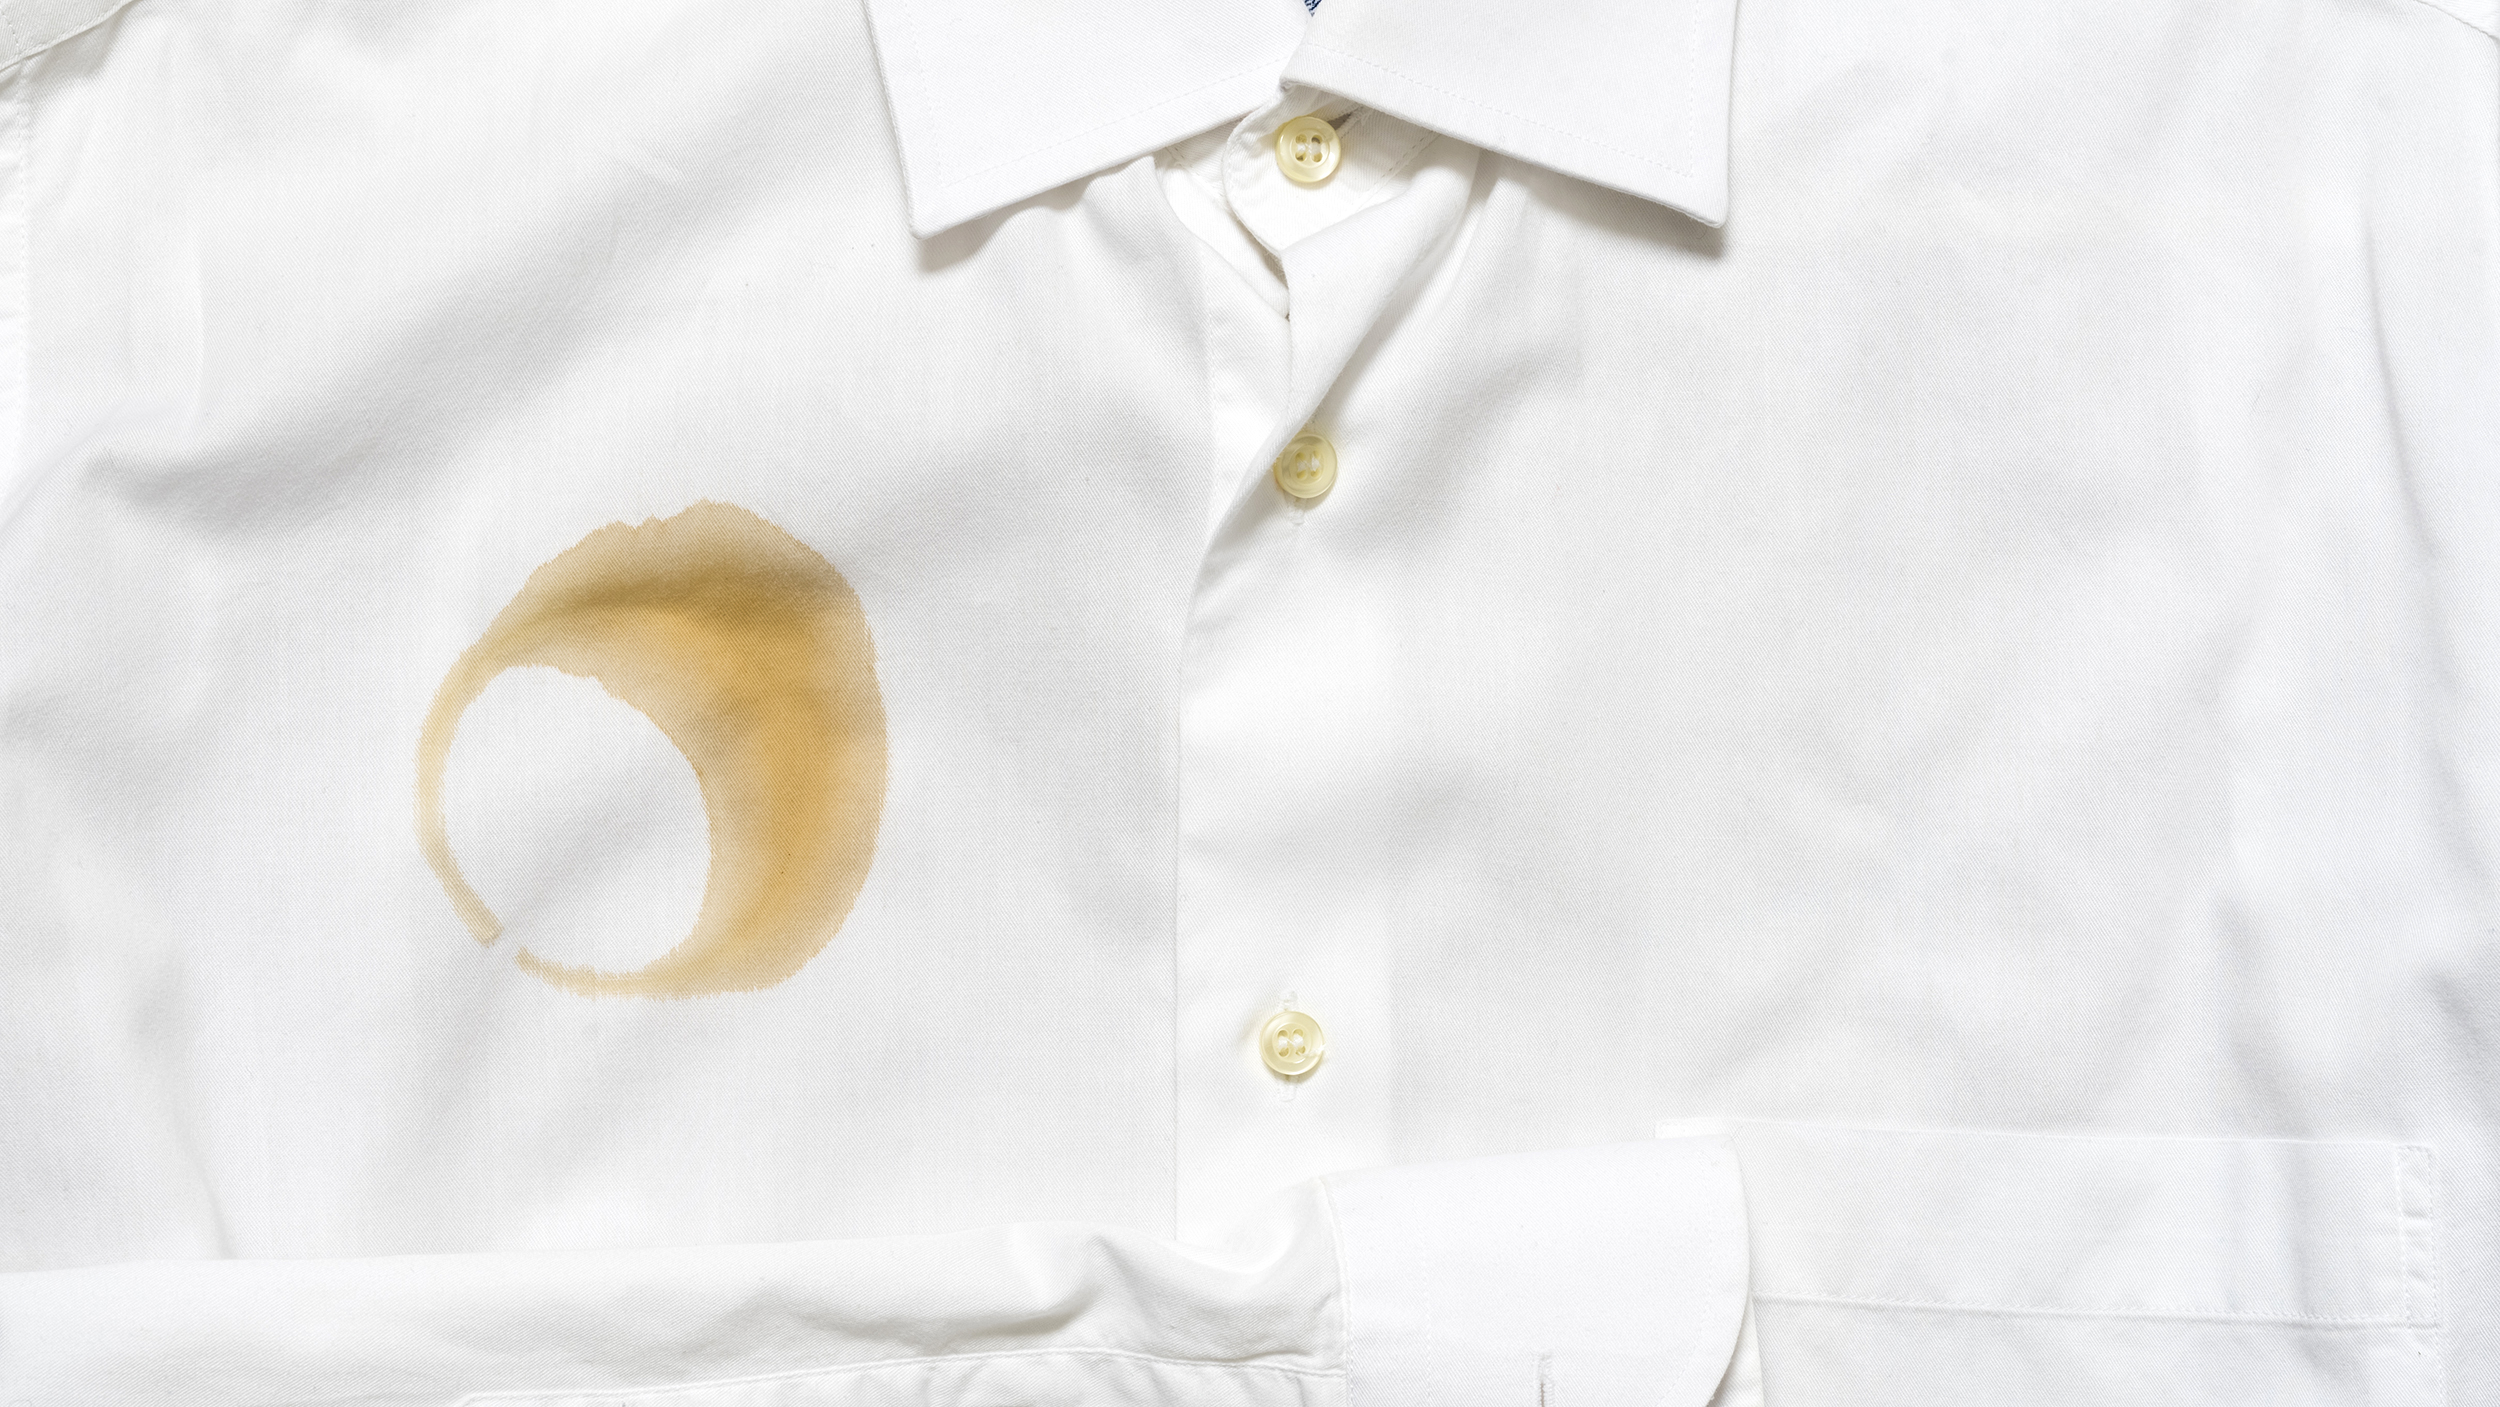 How To Remove Coffee Stains From Clothes And Carpet